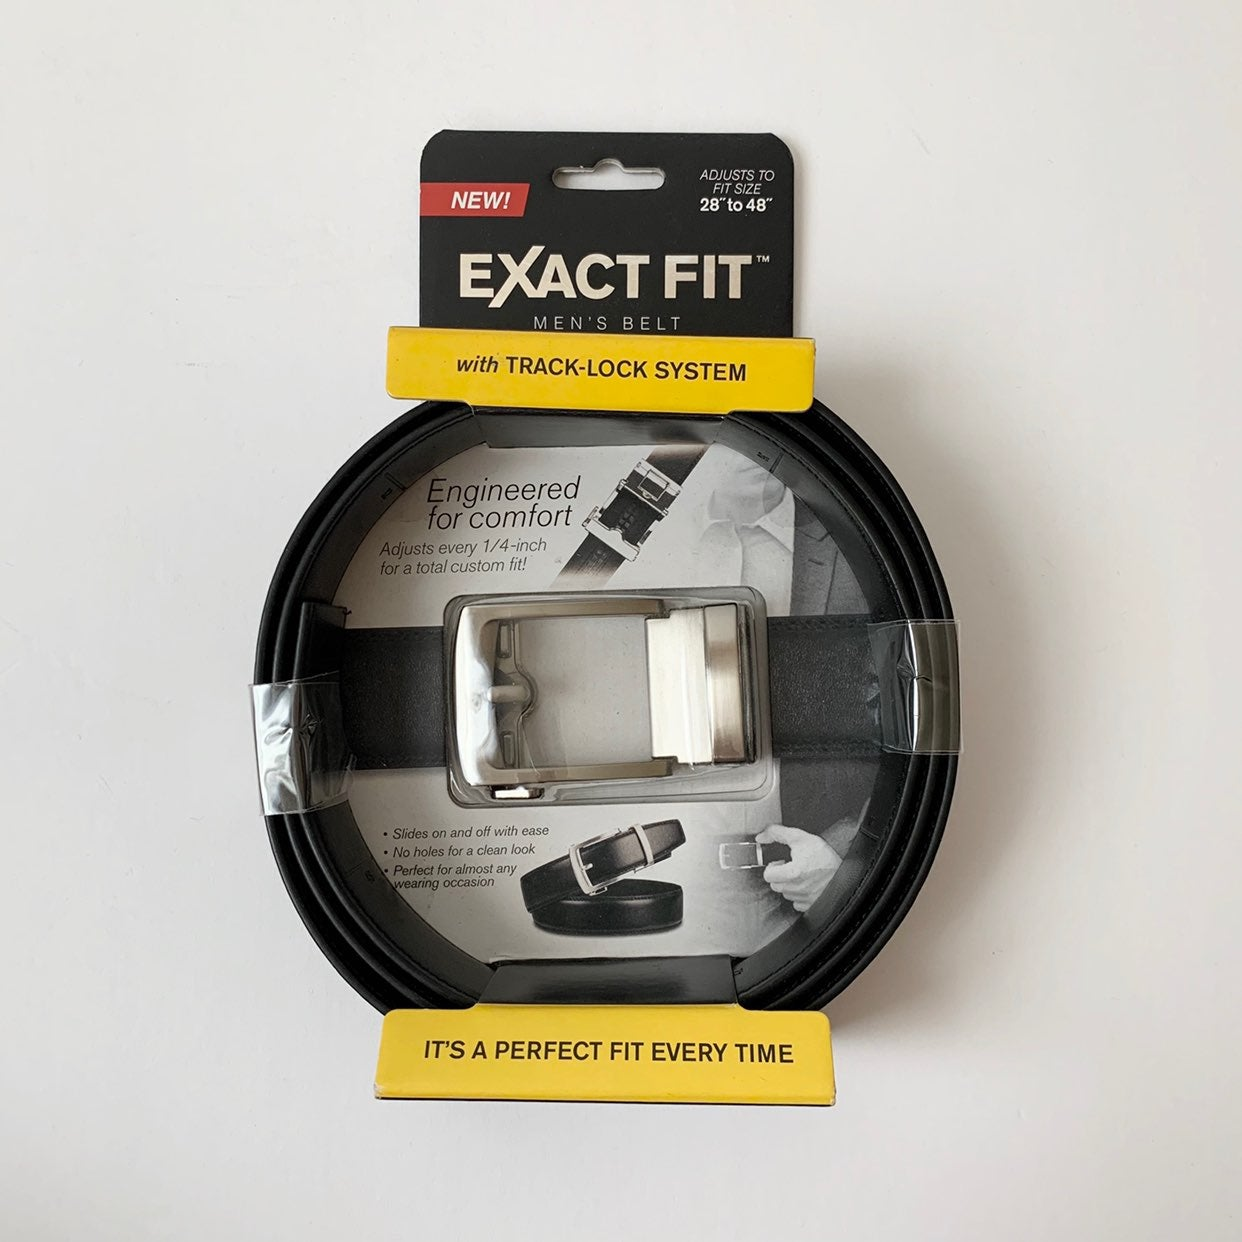 Exact Fit Men's Belt with Track-Lock Sys